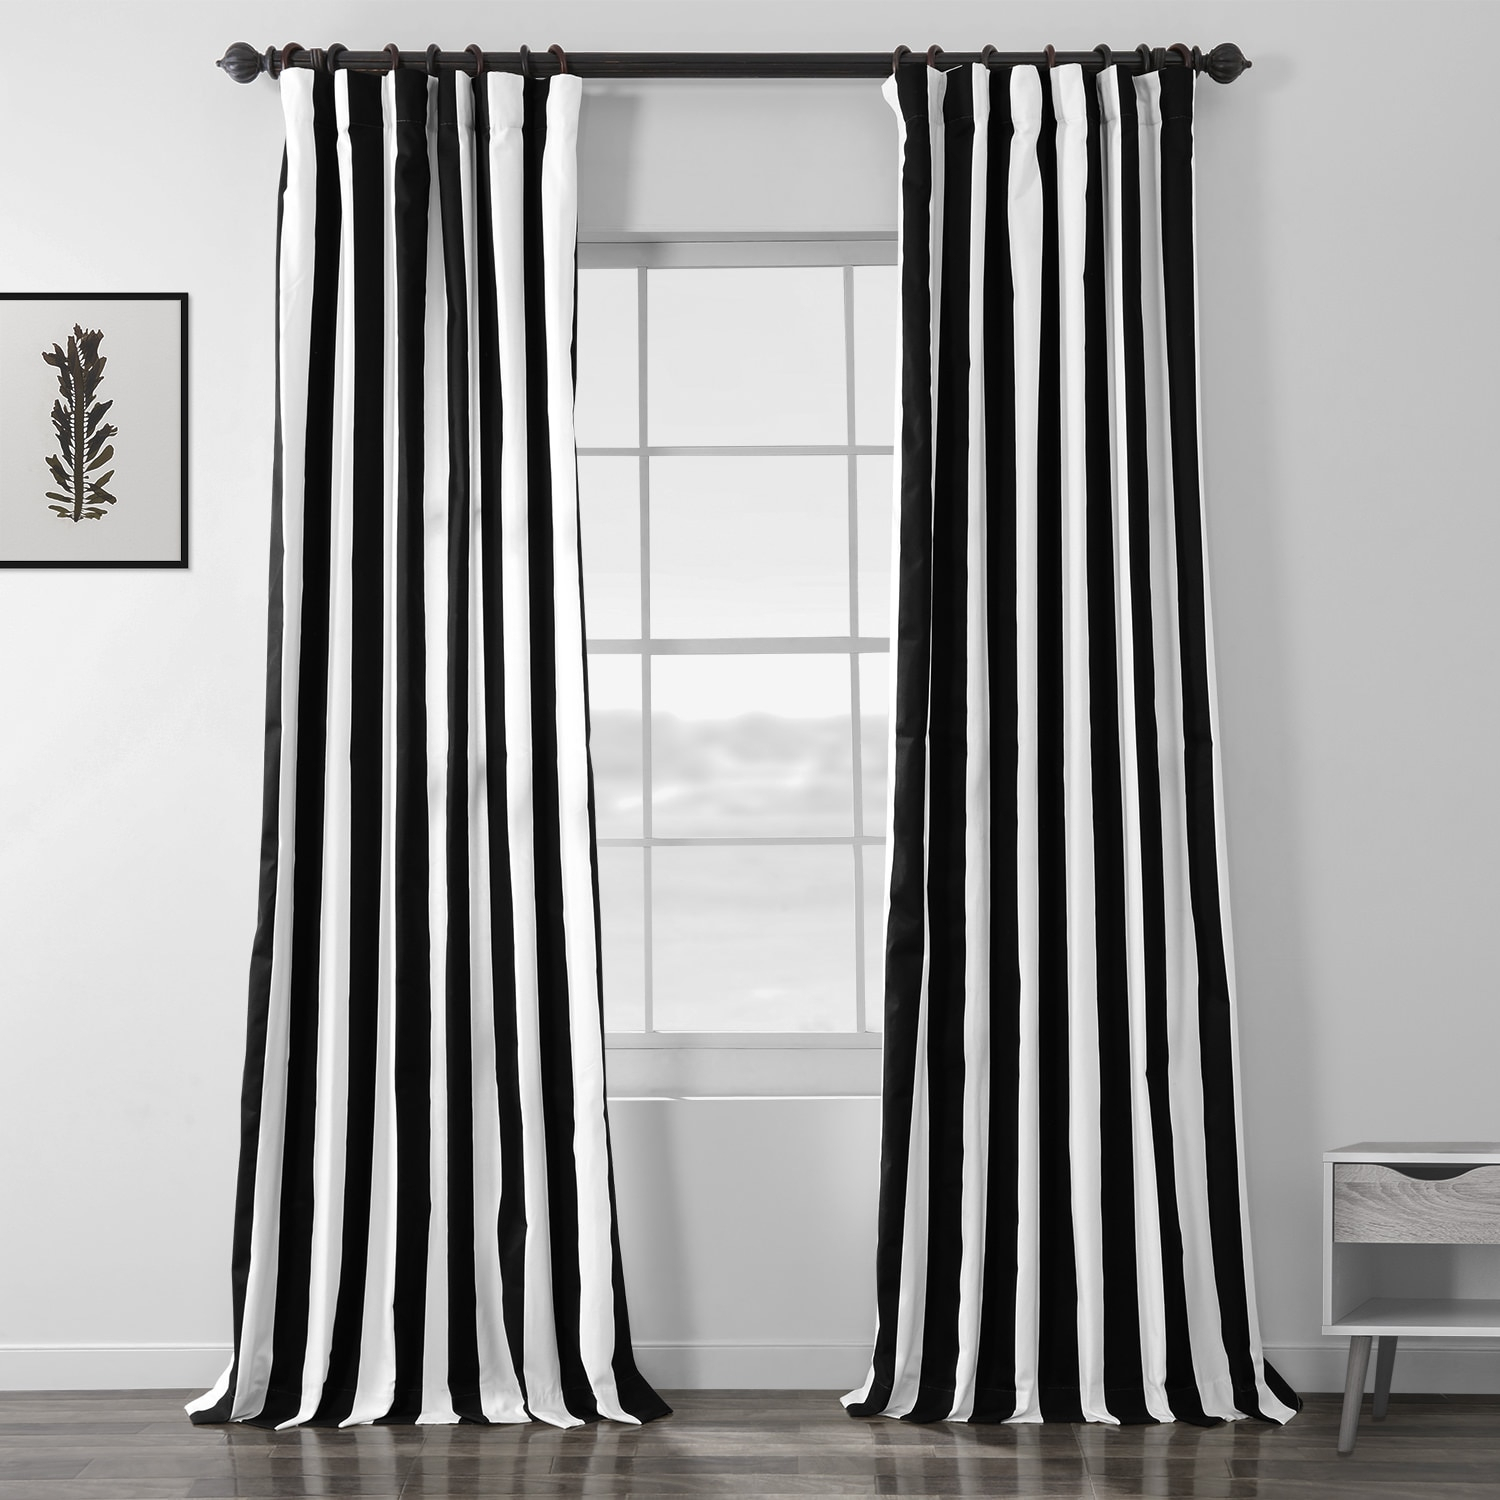 Cabana Black Printed Cotton Curtain Regarding Mecca Printed Cotton Single Curtain Panels (View 15 of 20)